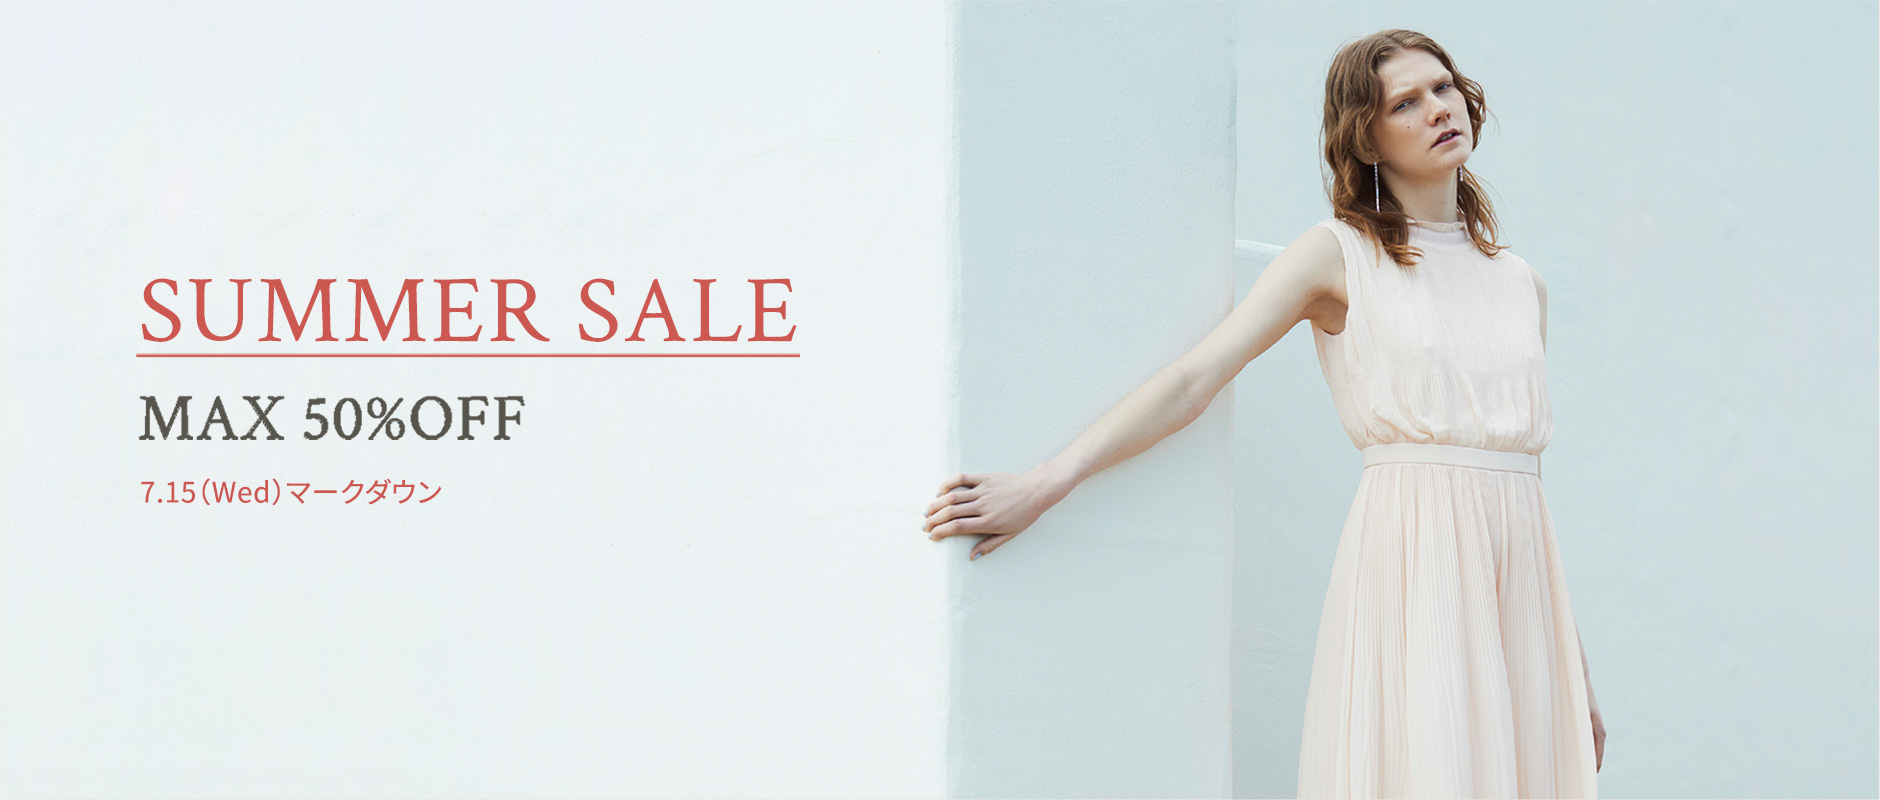 SUMMER SALE MAX 50%OFF